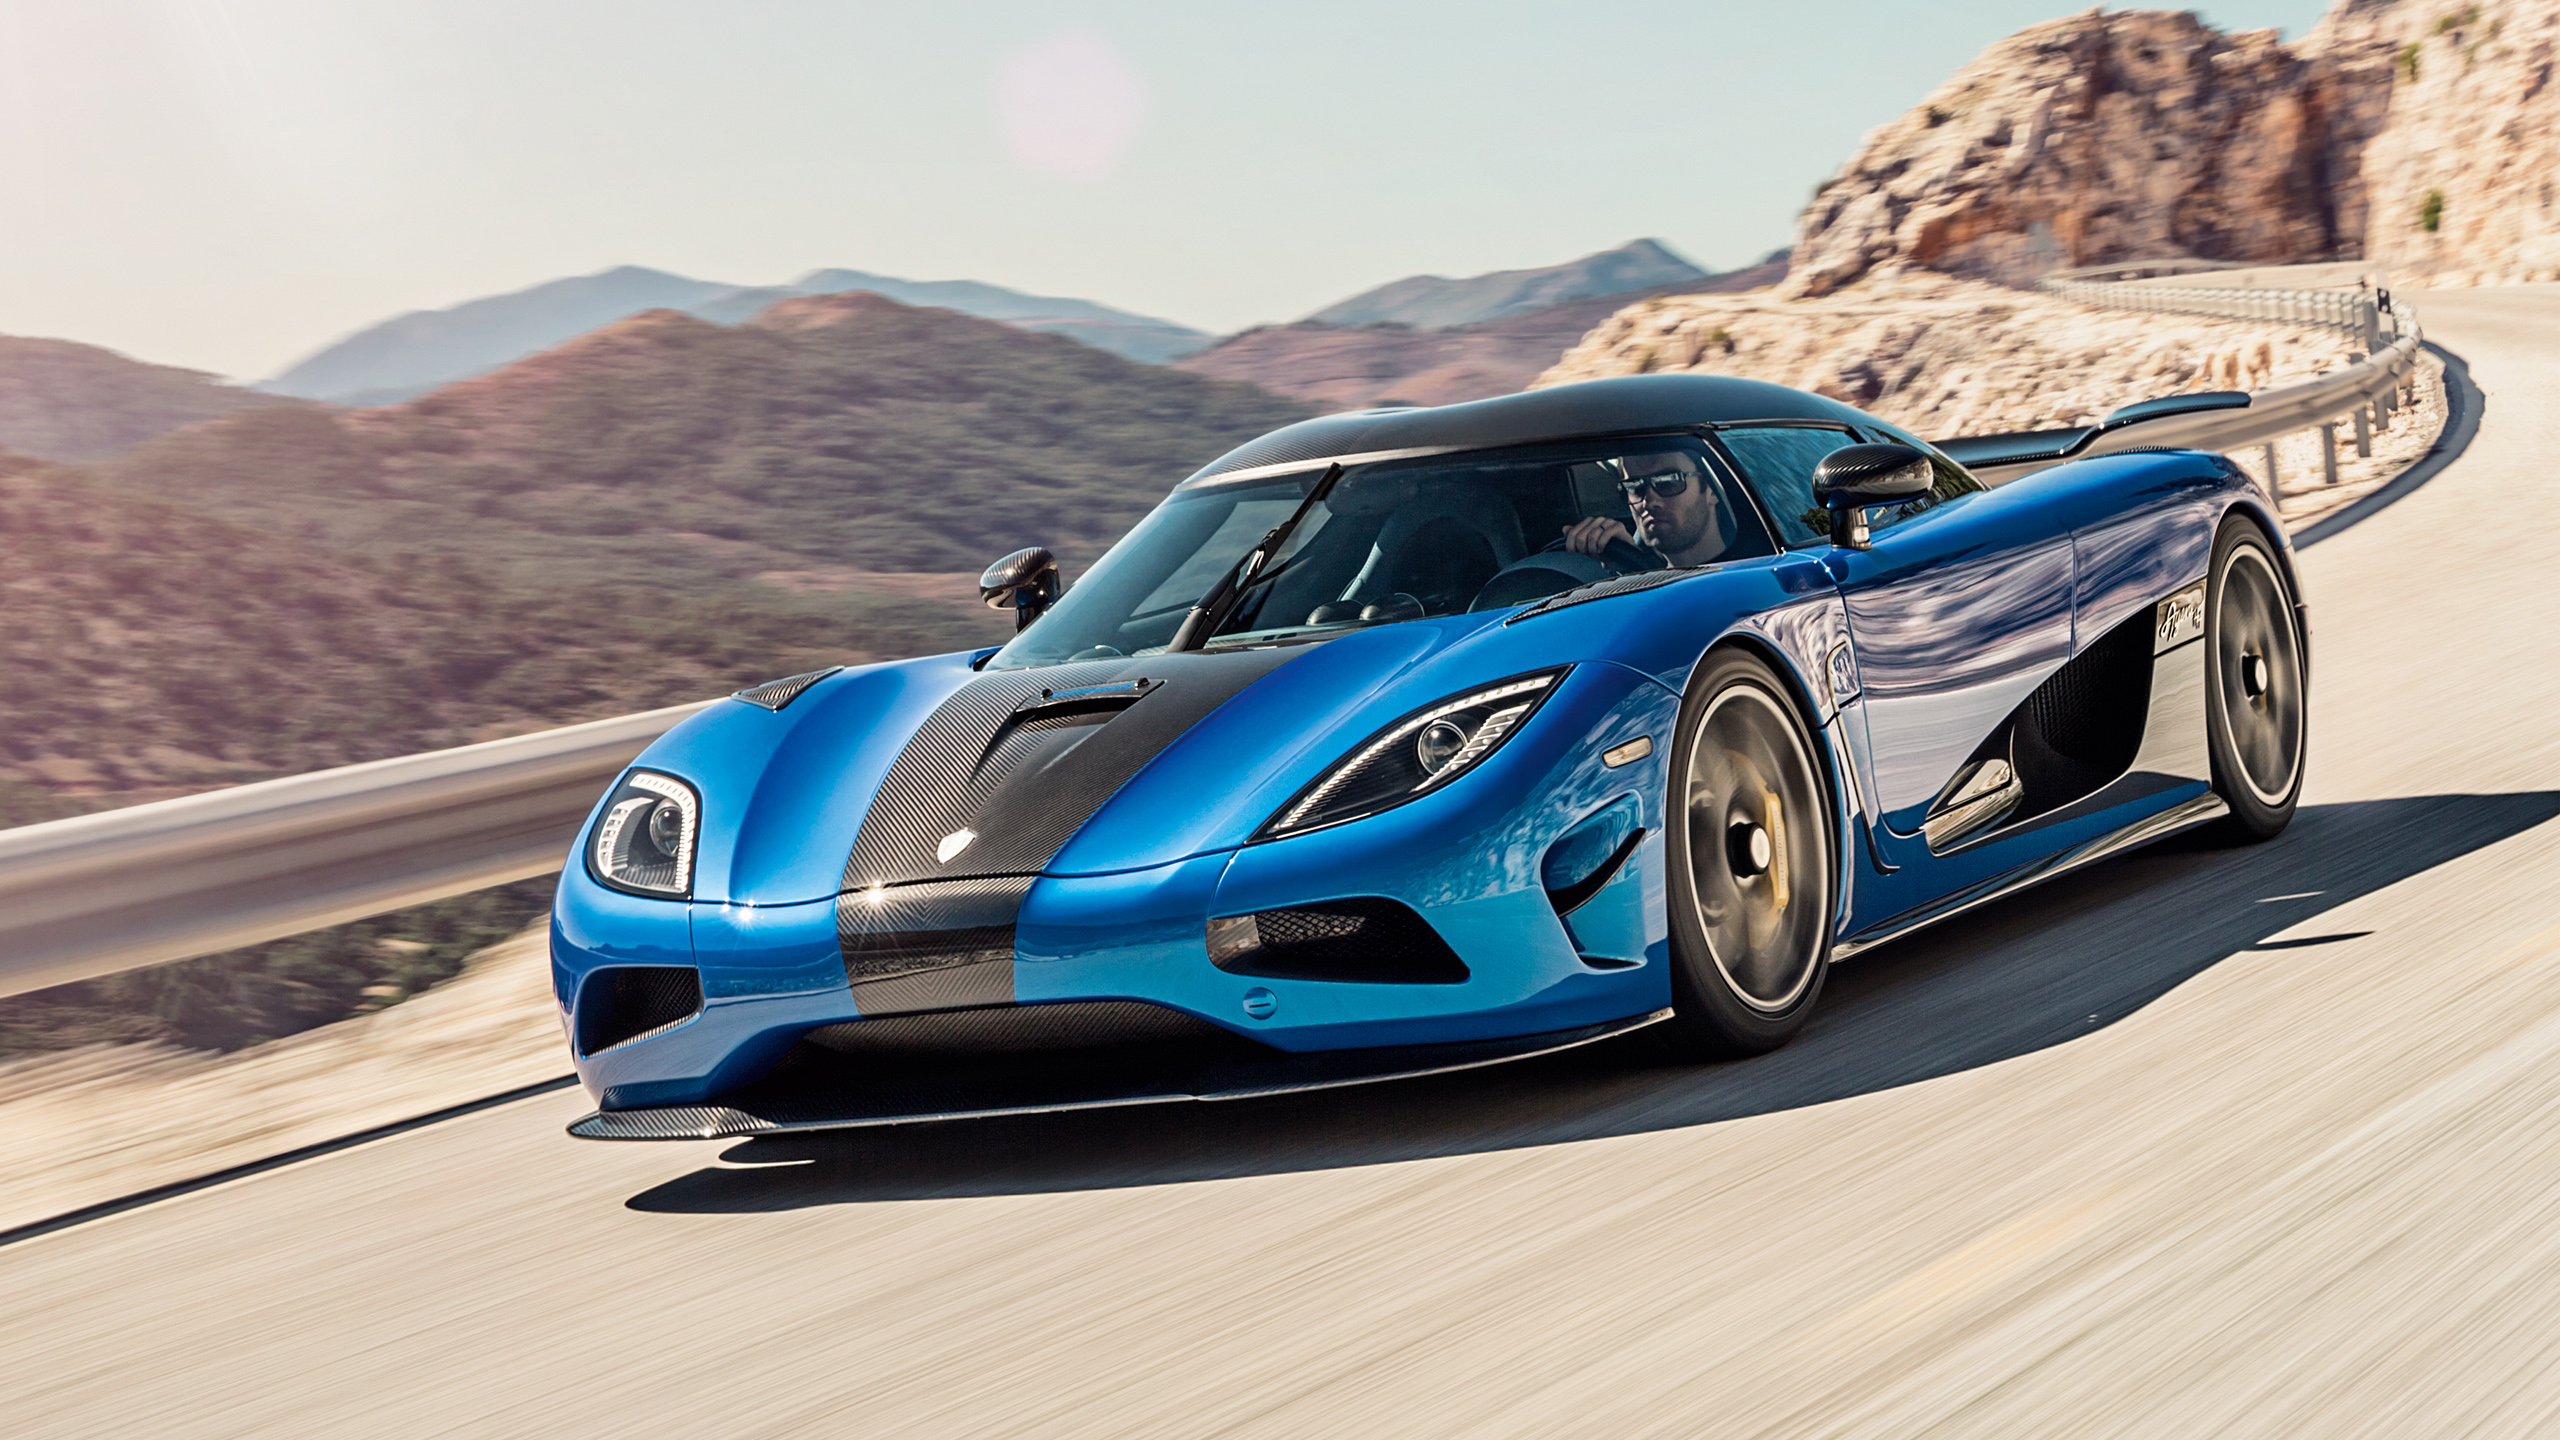 28 Koenigsegg Wallpapers for PC   GsFDcY 2560x1440